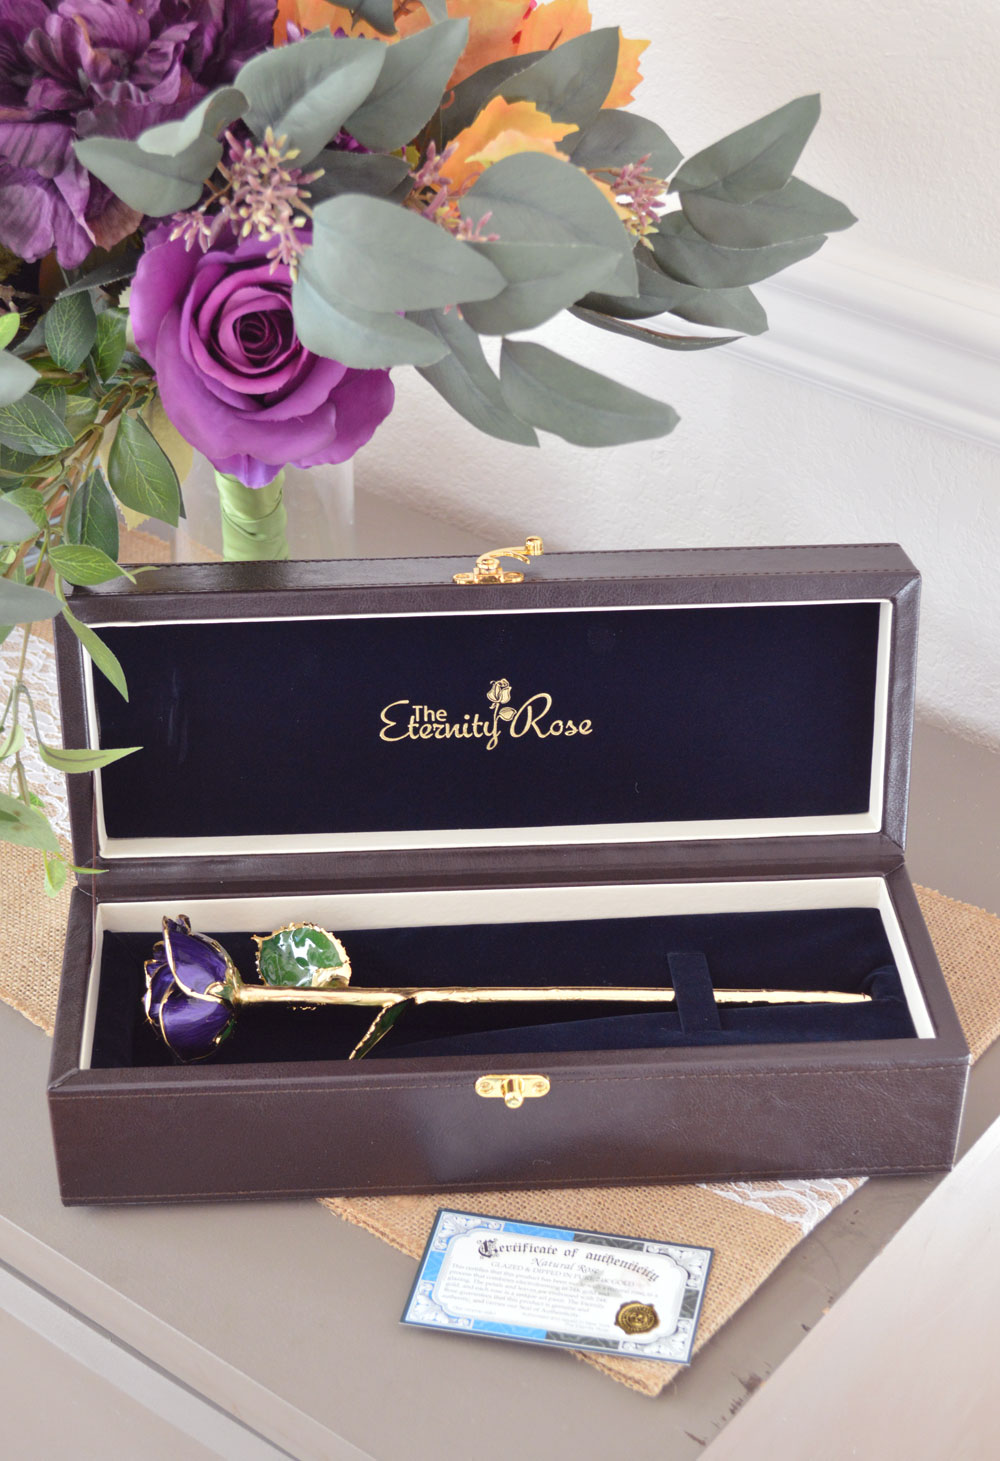 Eternity Rose 24k gold dipped blooms come in a gorgeous display box - Mommy Scene